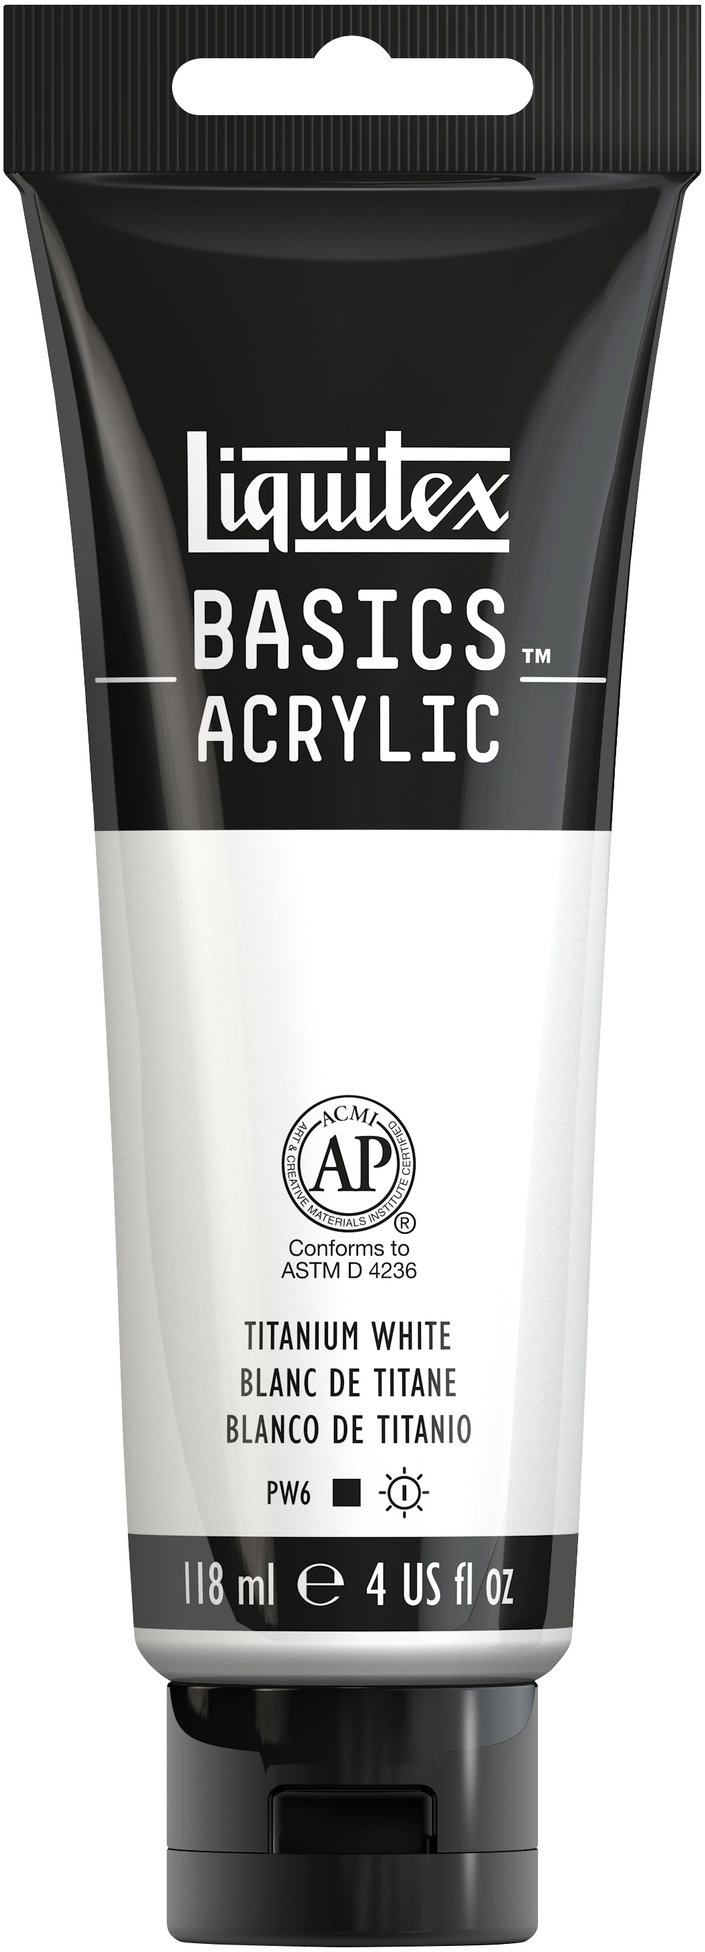 Liquitex BASICS Acrylic Paint 4oz-Titanium White